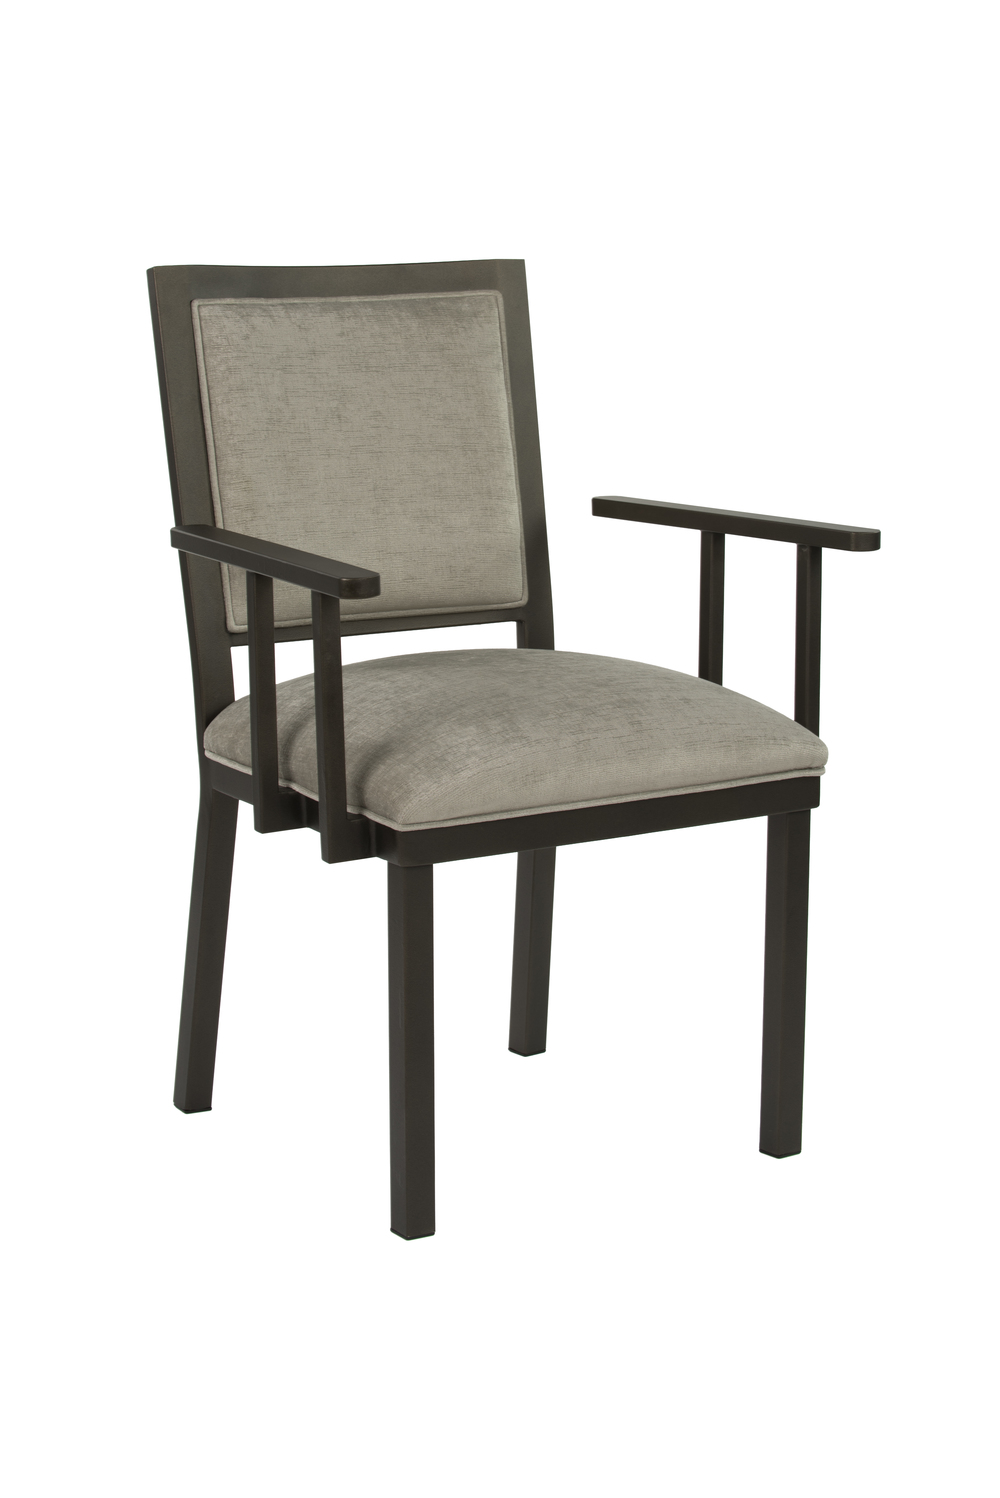 Wesley Allen - Chair